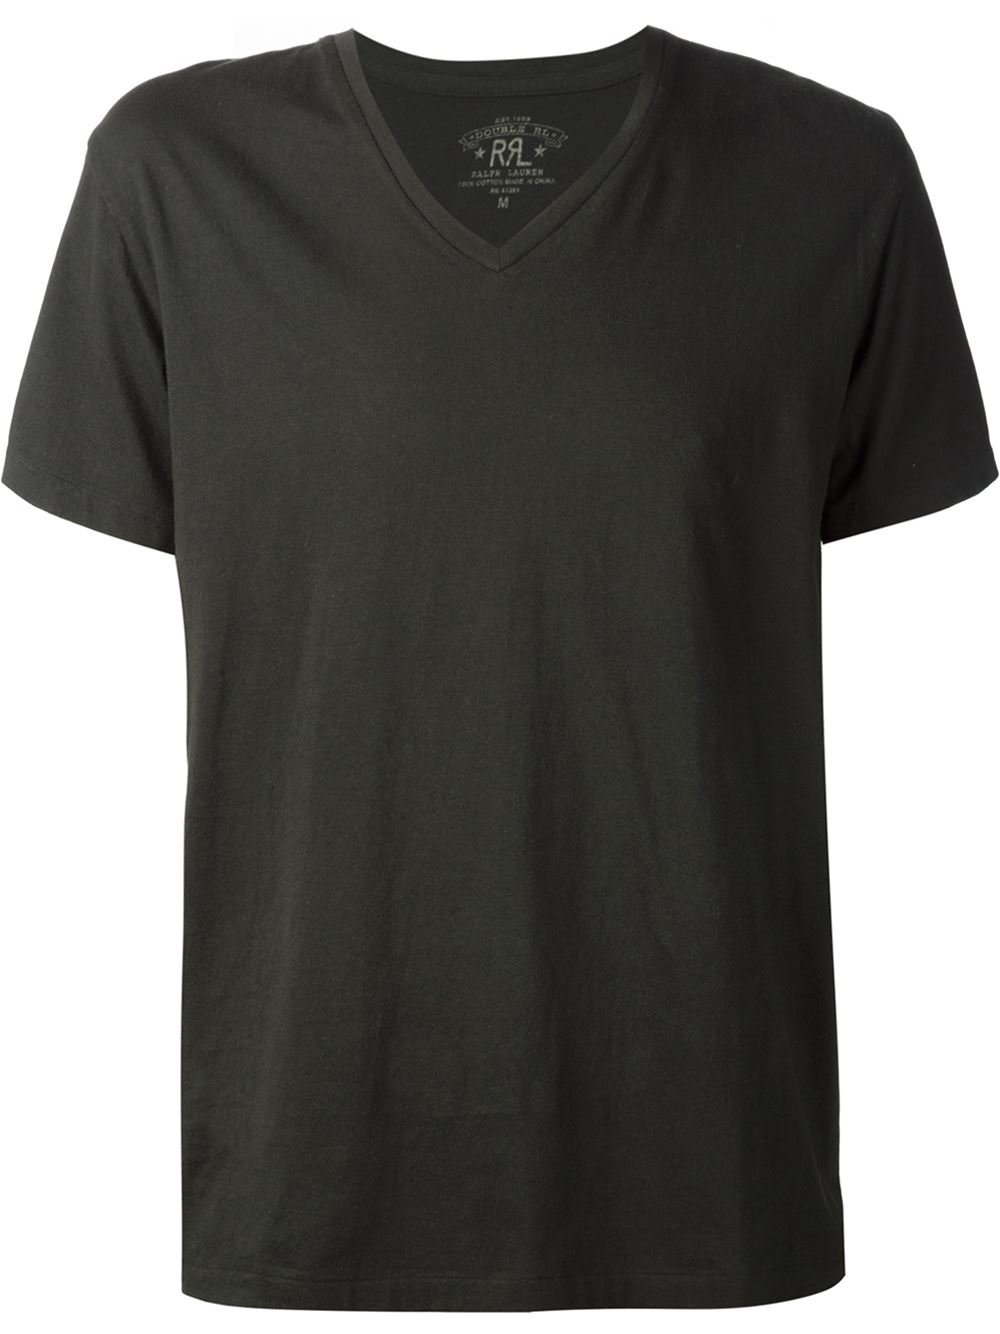 Lyst rrl v neck t shirt in black for men V neck black t shirt